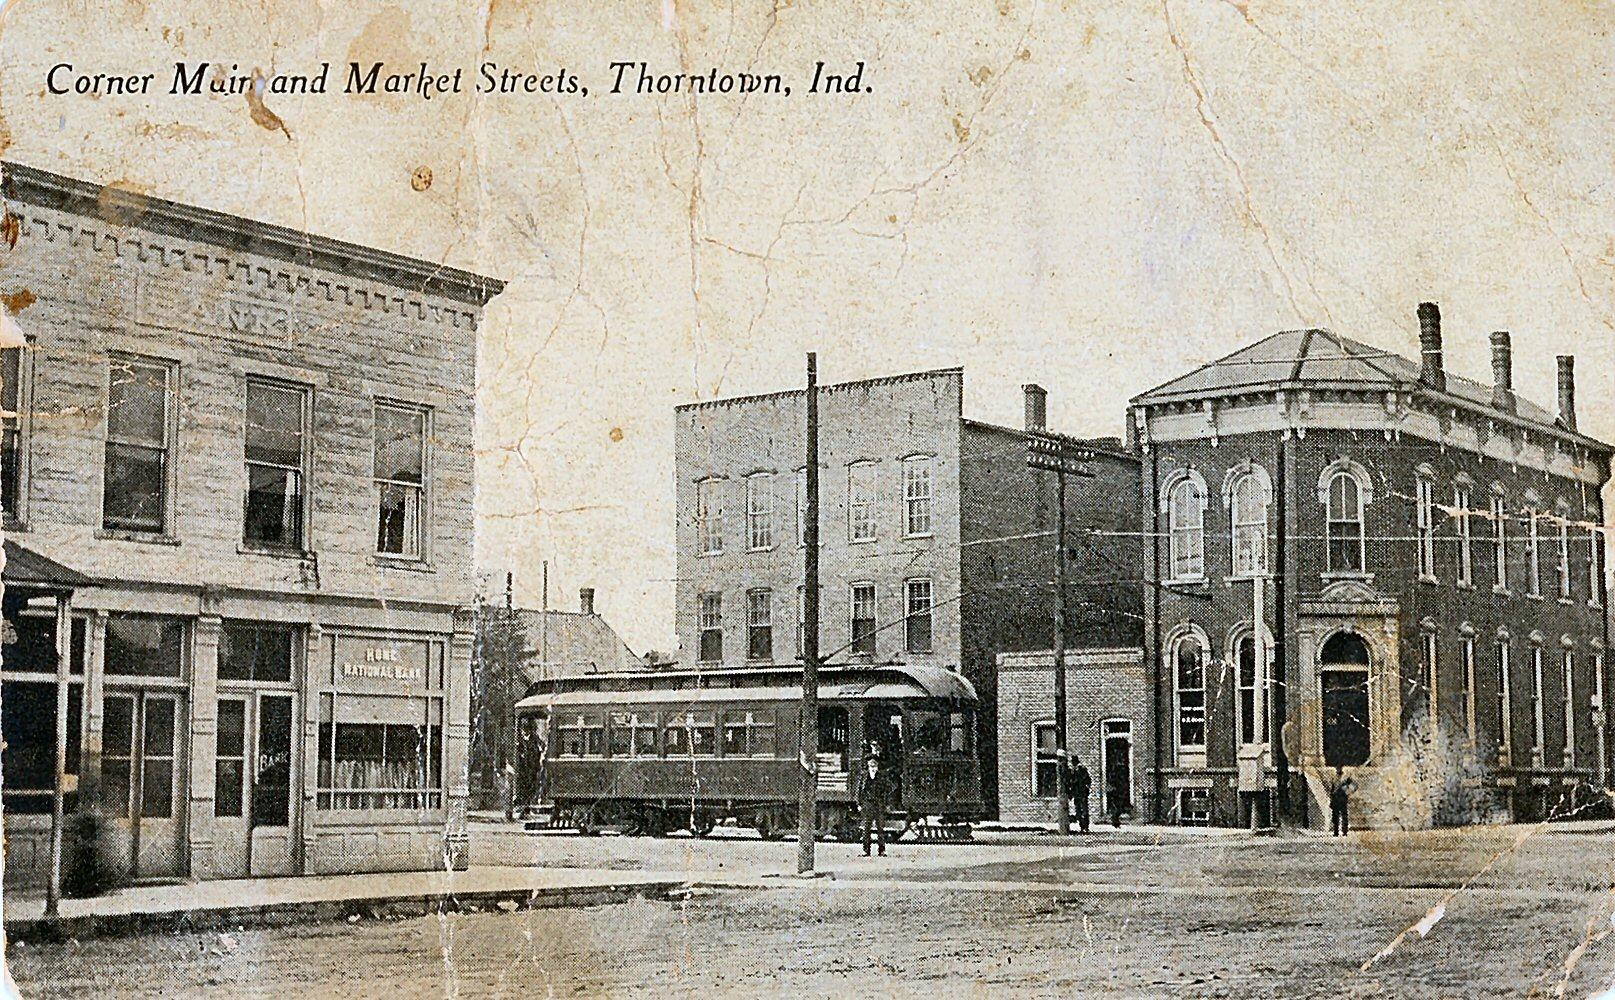 Corner Main and Market Streets